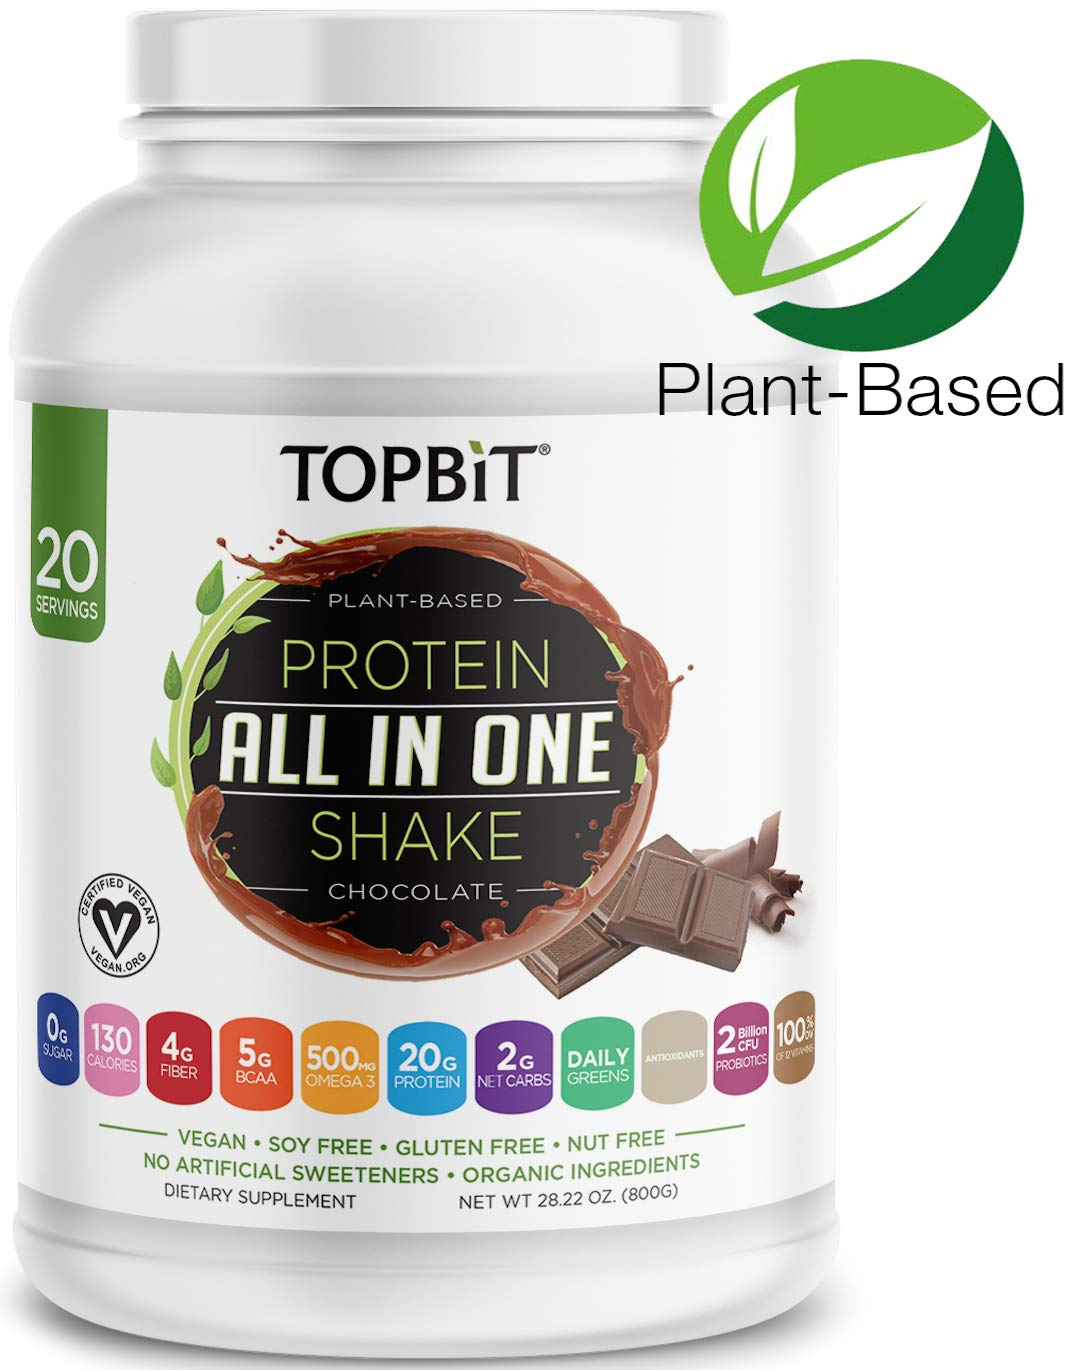 TOPBiT All-in-One Plant Protein Powder, Chocolate - Vegan Protein Powder, Sugar Free Protein, Stevia Free, Nut Free, Soy Free, 20g Protein Shake, Probiotics, BCAA, Greens, 1.8LB by TOPBIT